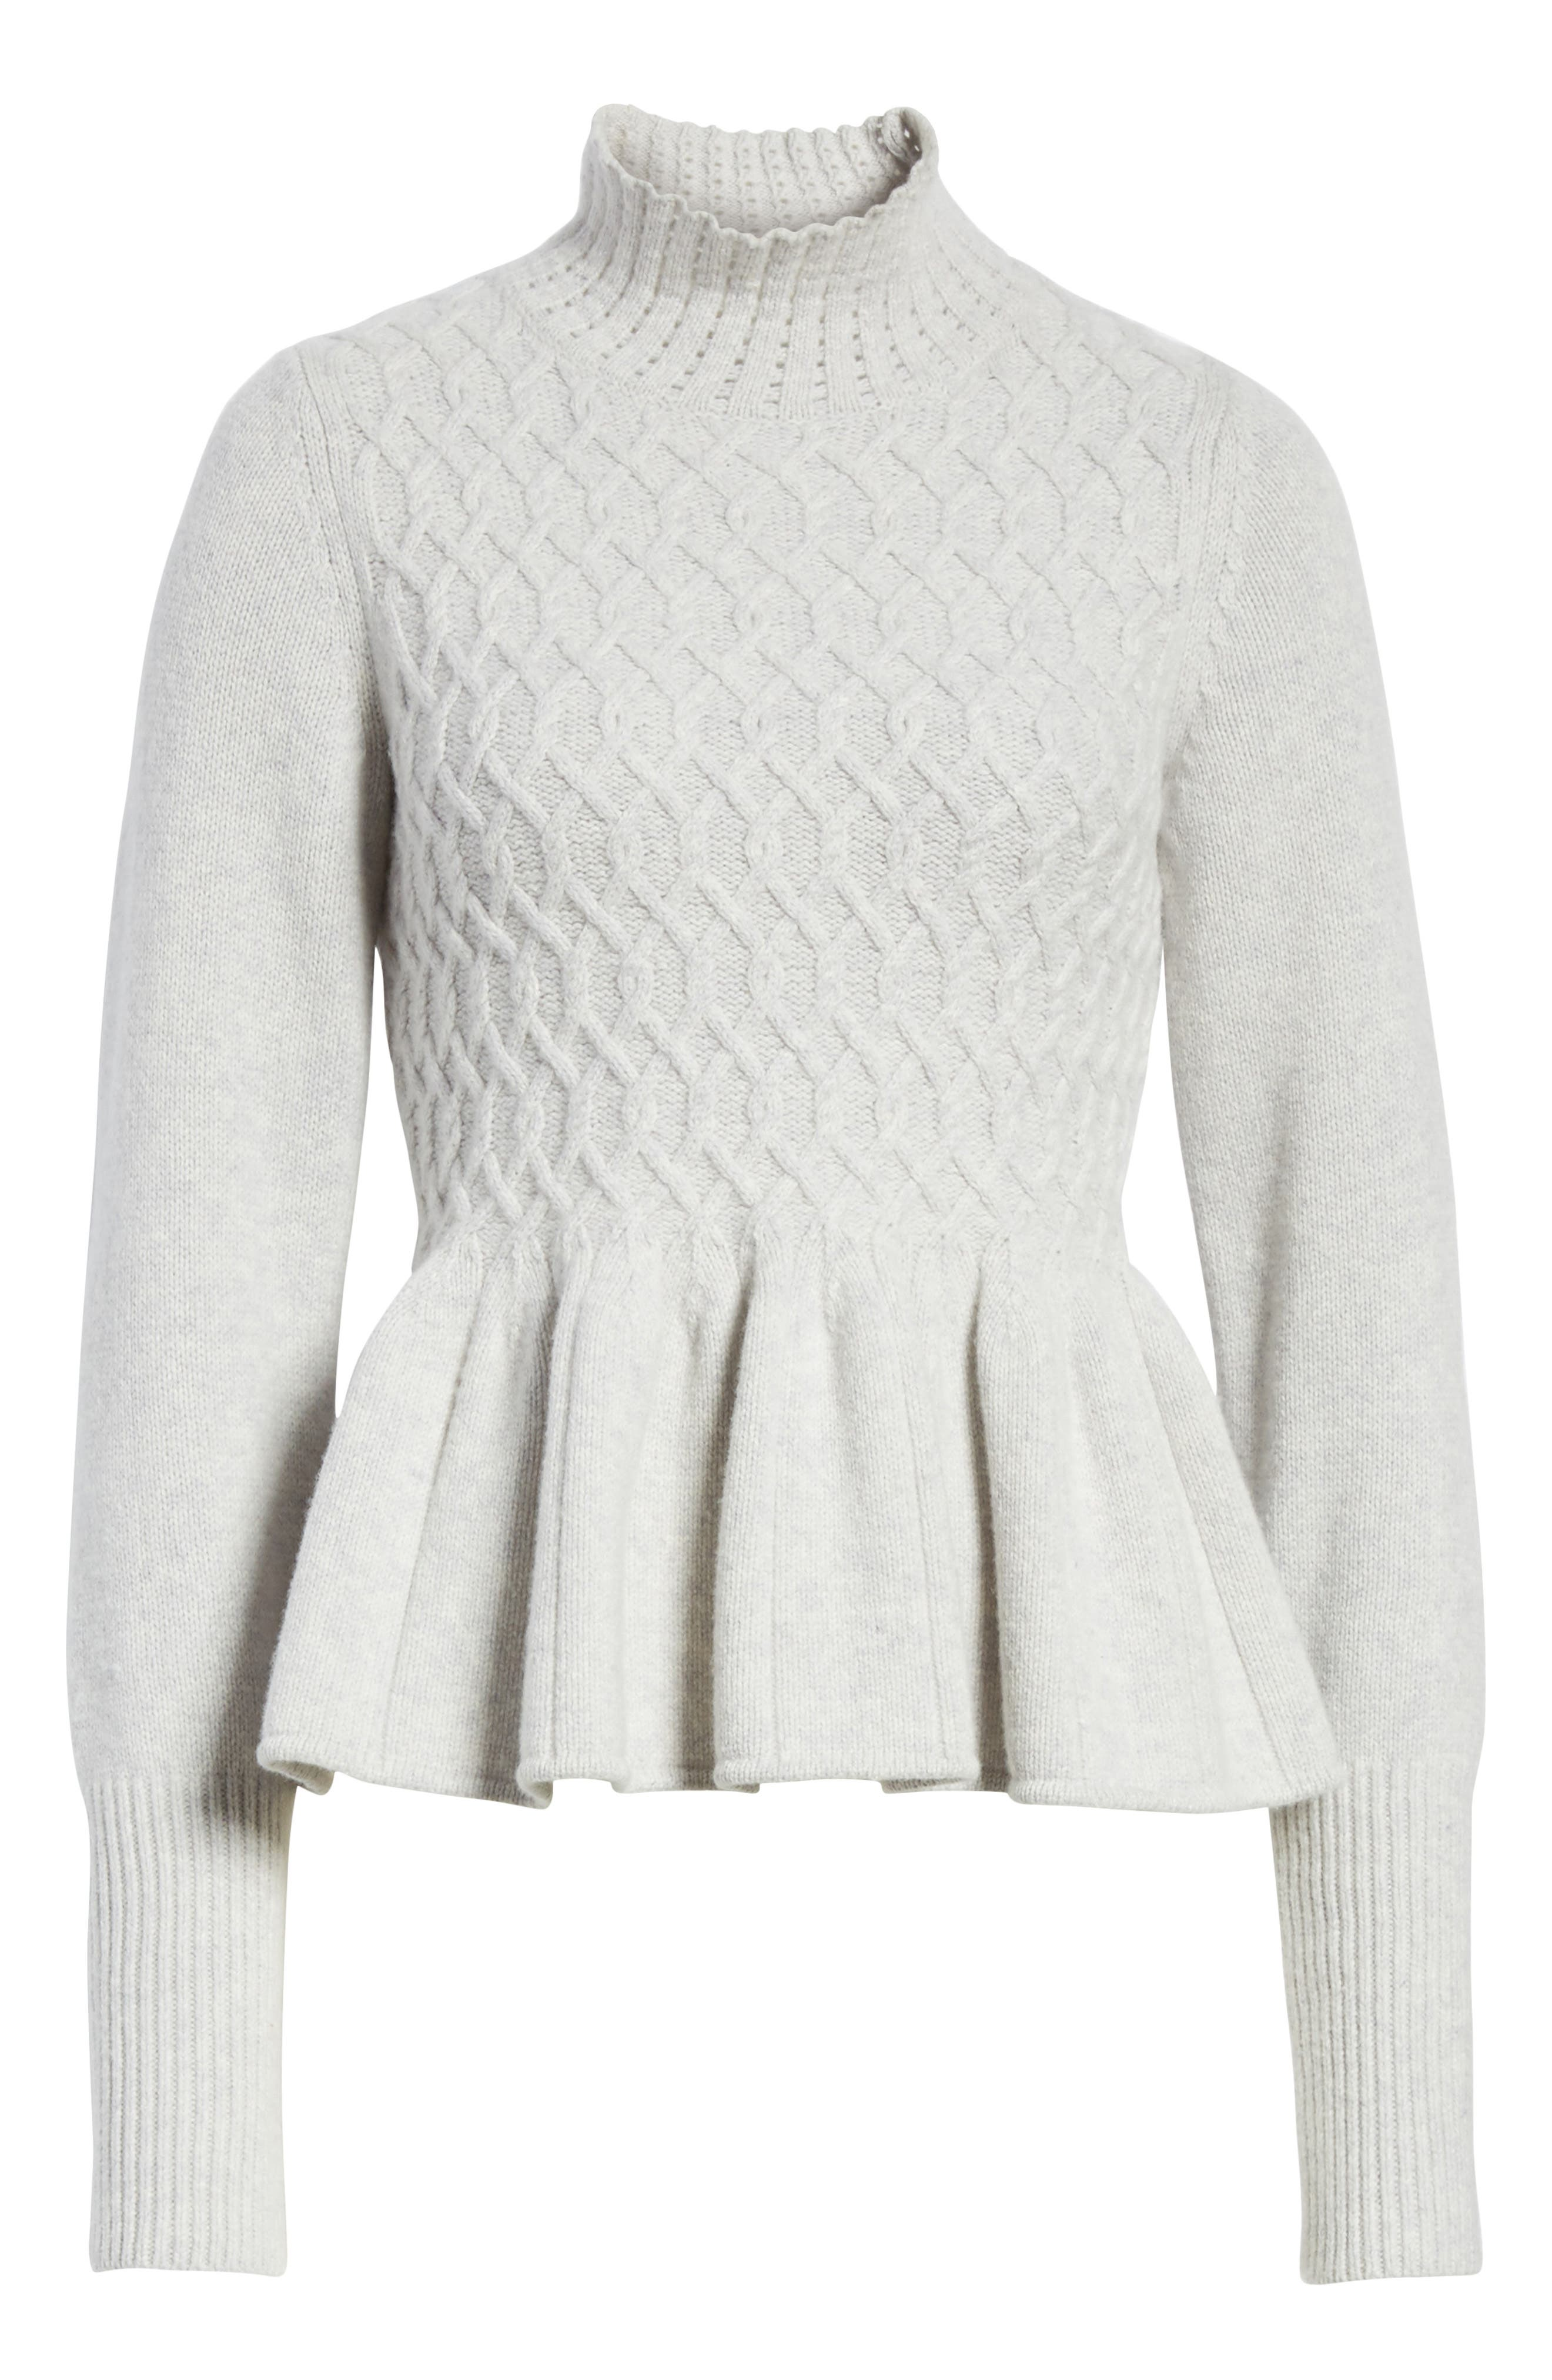 Braided Cable Mock Neck Pullover,                             Alternate thumbnail 6, color,                             Light Heather Grey